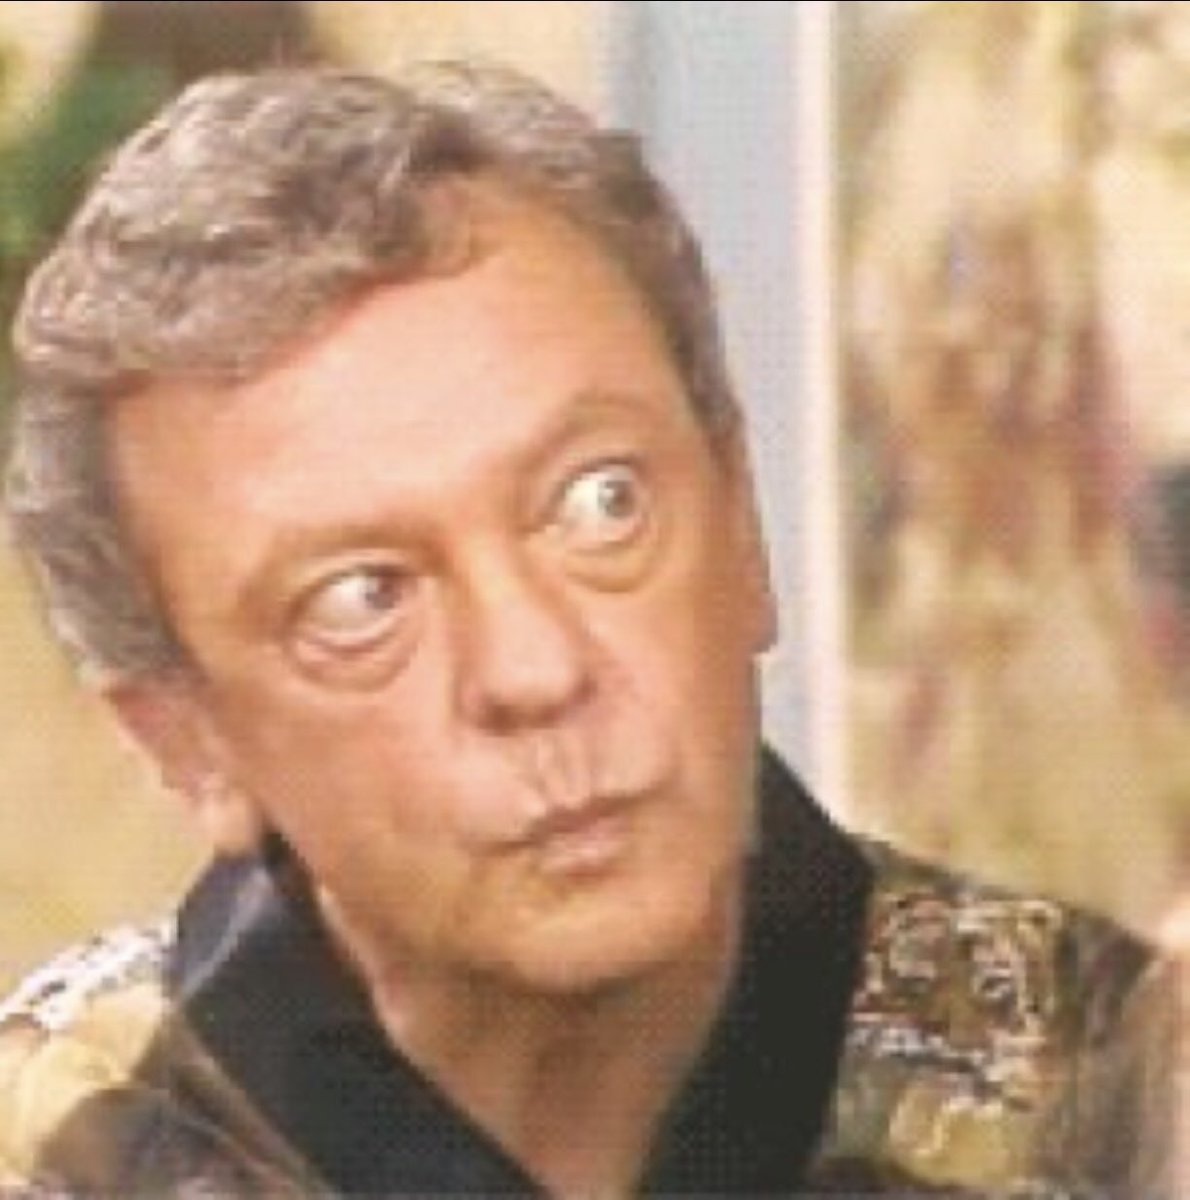 Which Three's Company Landlord Made You Laugh More?  #ThreesCompany #Television #TV #MrRoper #NormalFell #MrFurley #DonKnotts #Comedy #Funny #Laughterpic.twitter.com/bfTVrC2Jpx